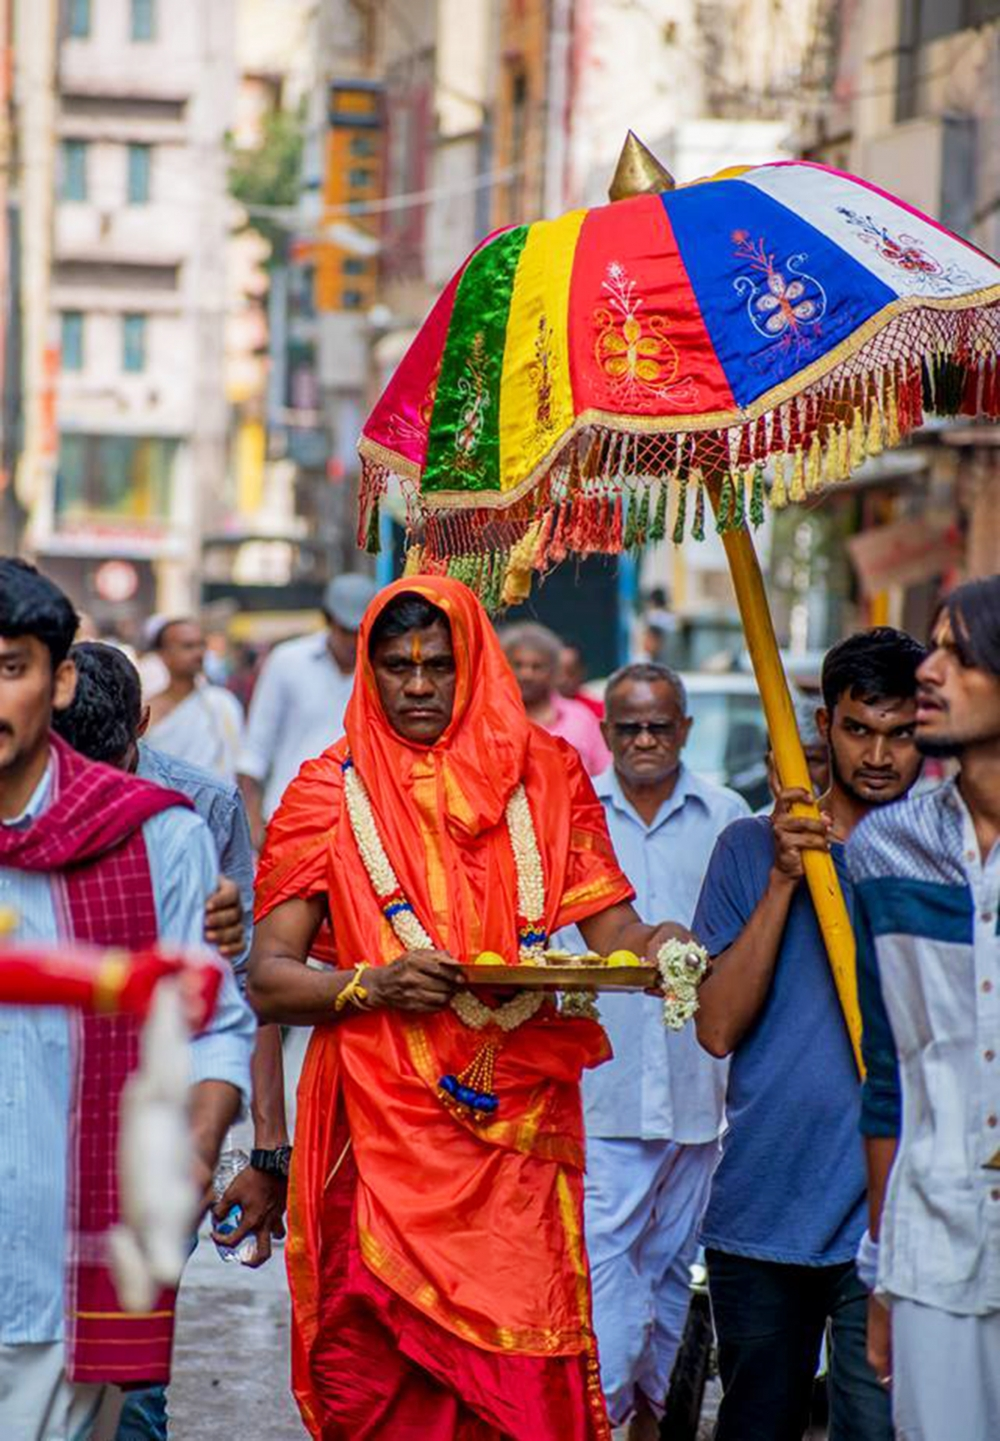 Fig. 4. One of the secondary priests on his way to a temple in Majestic to perform Gange puje (Photo courtesy: Prashanth B. Vepuri, Revival Heritage Hub)